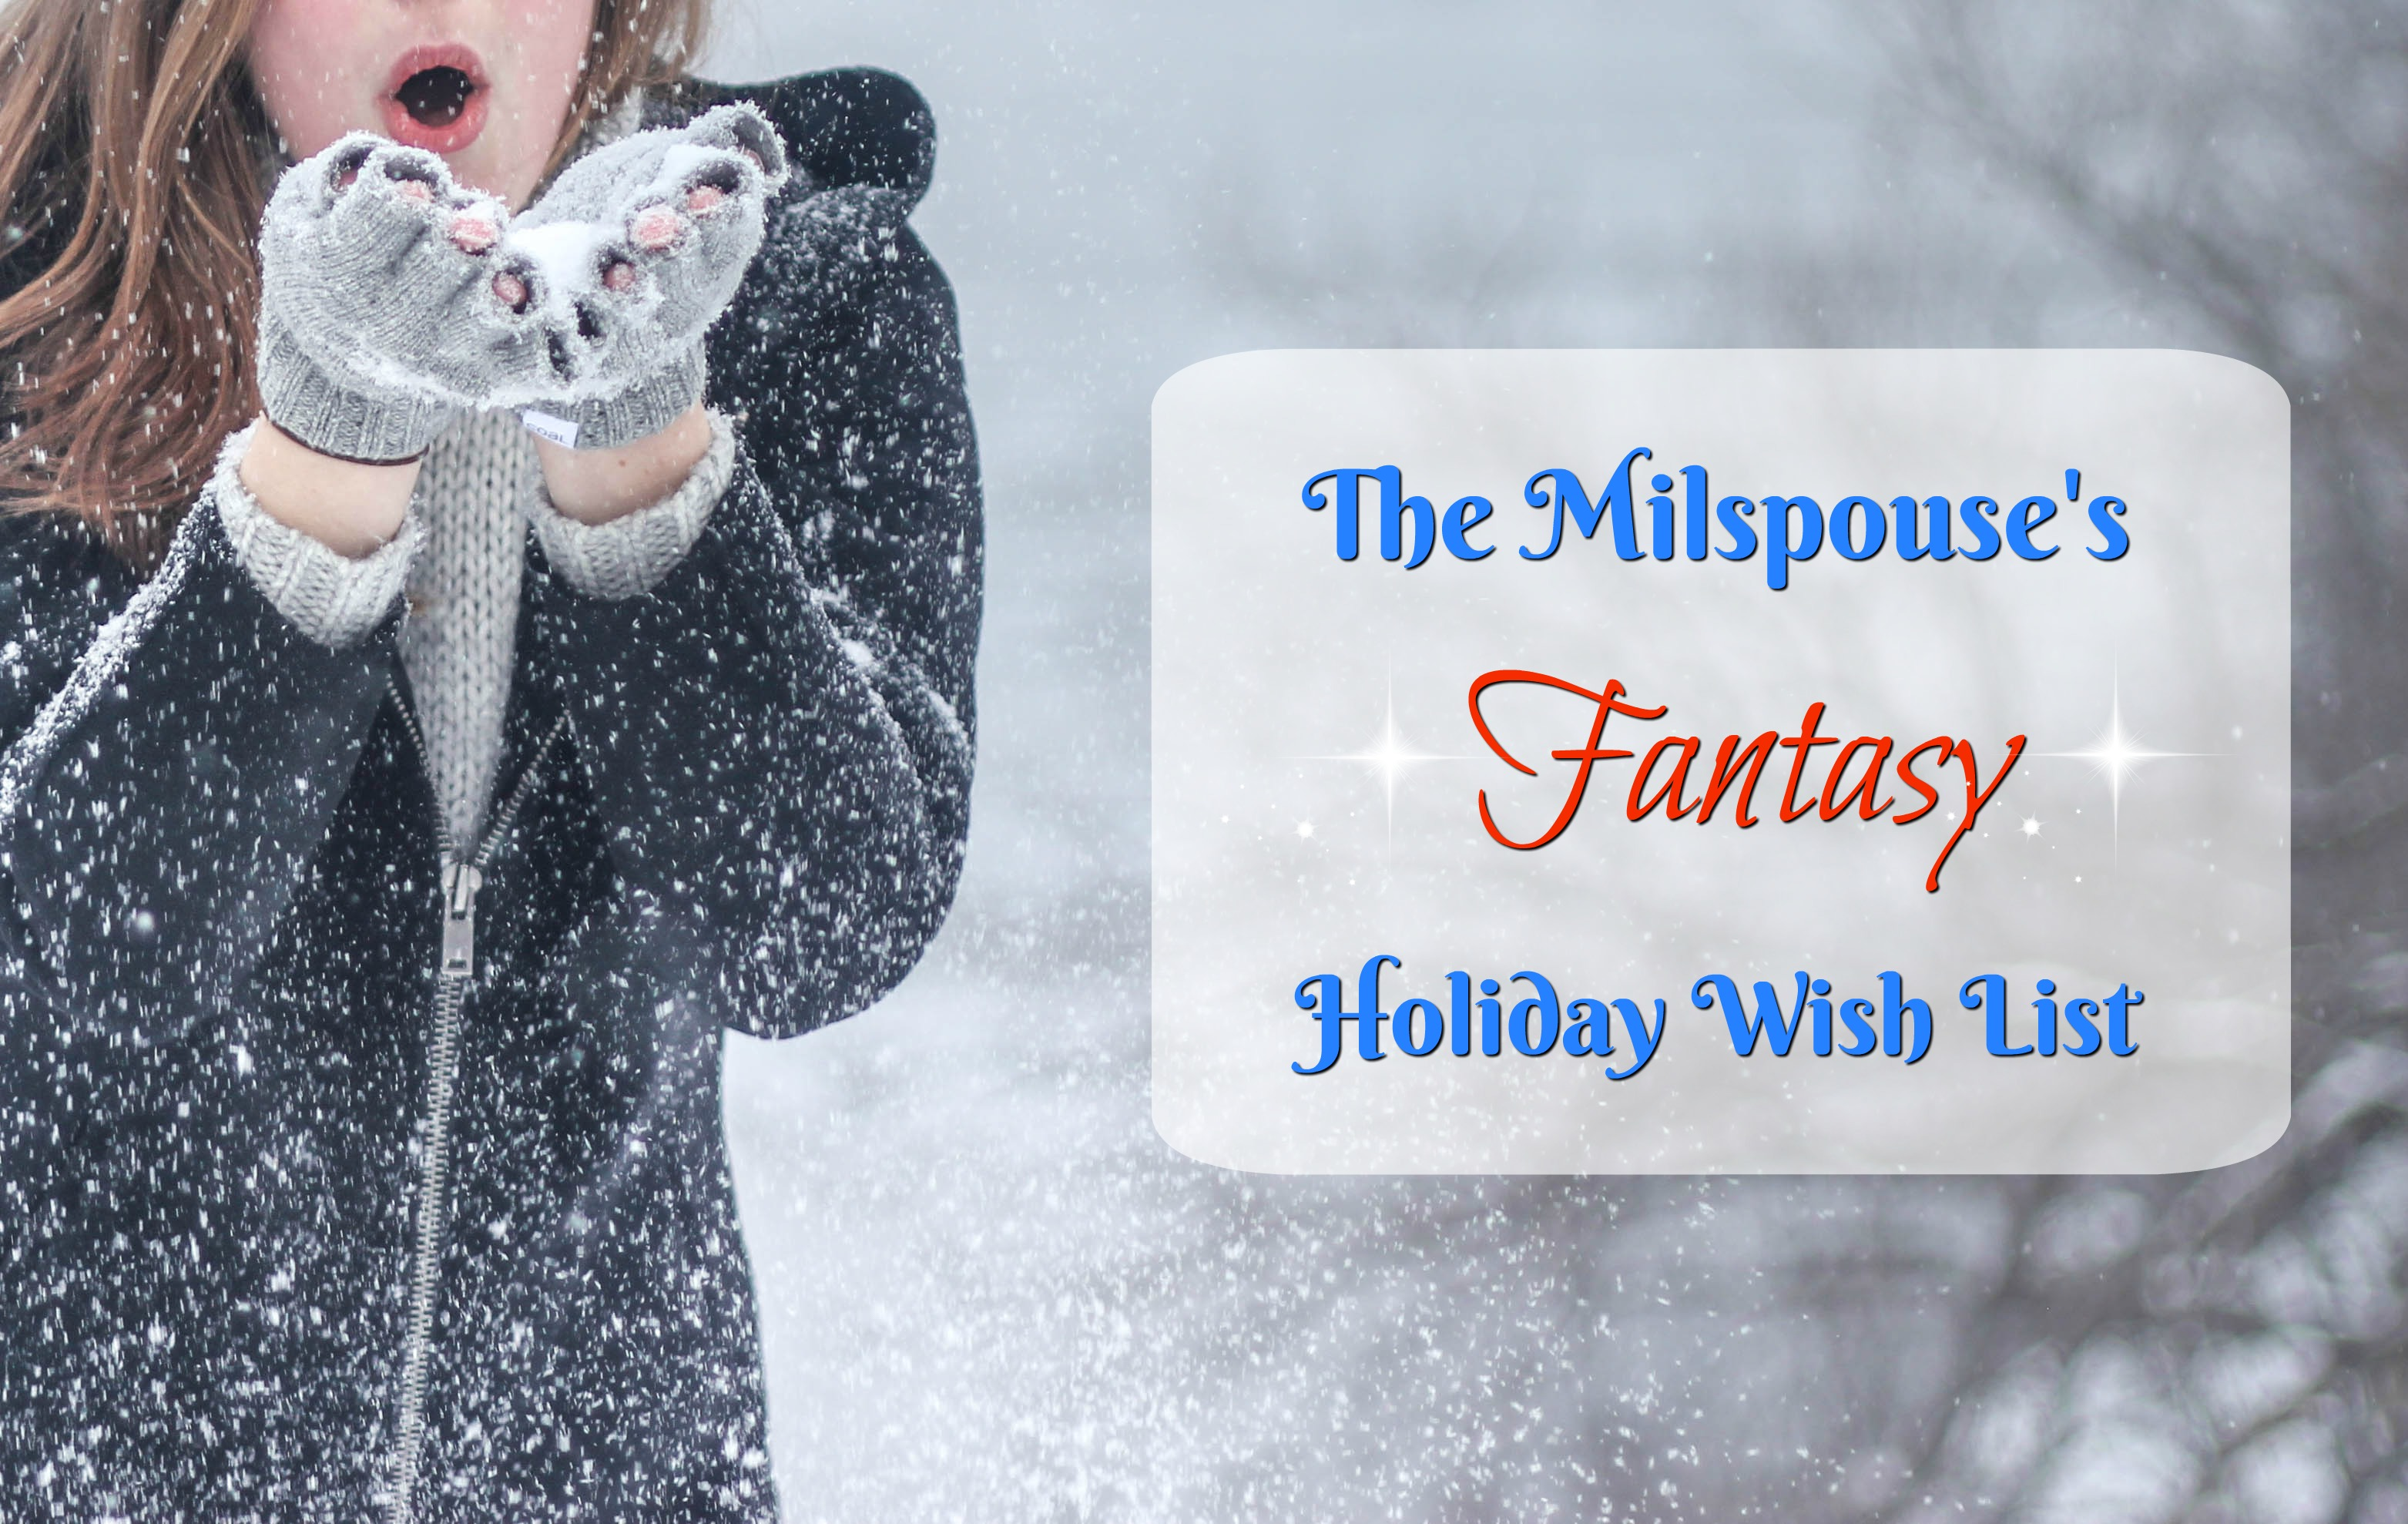 The Milspouse's Fantasy Holiday Wish List